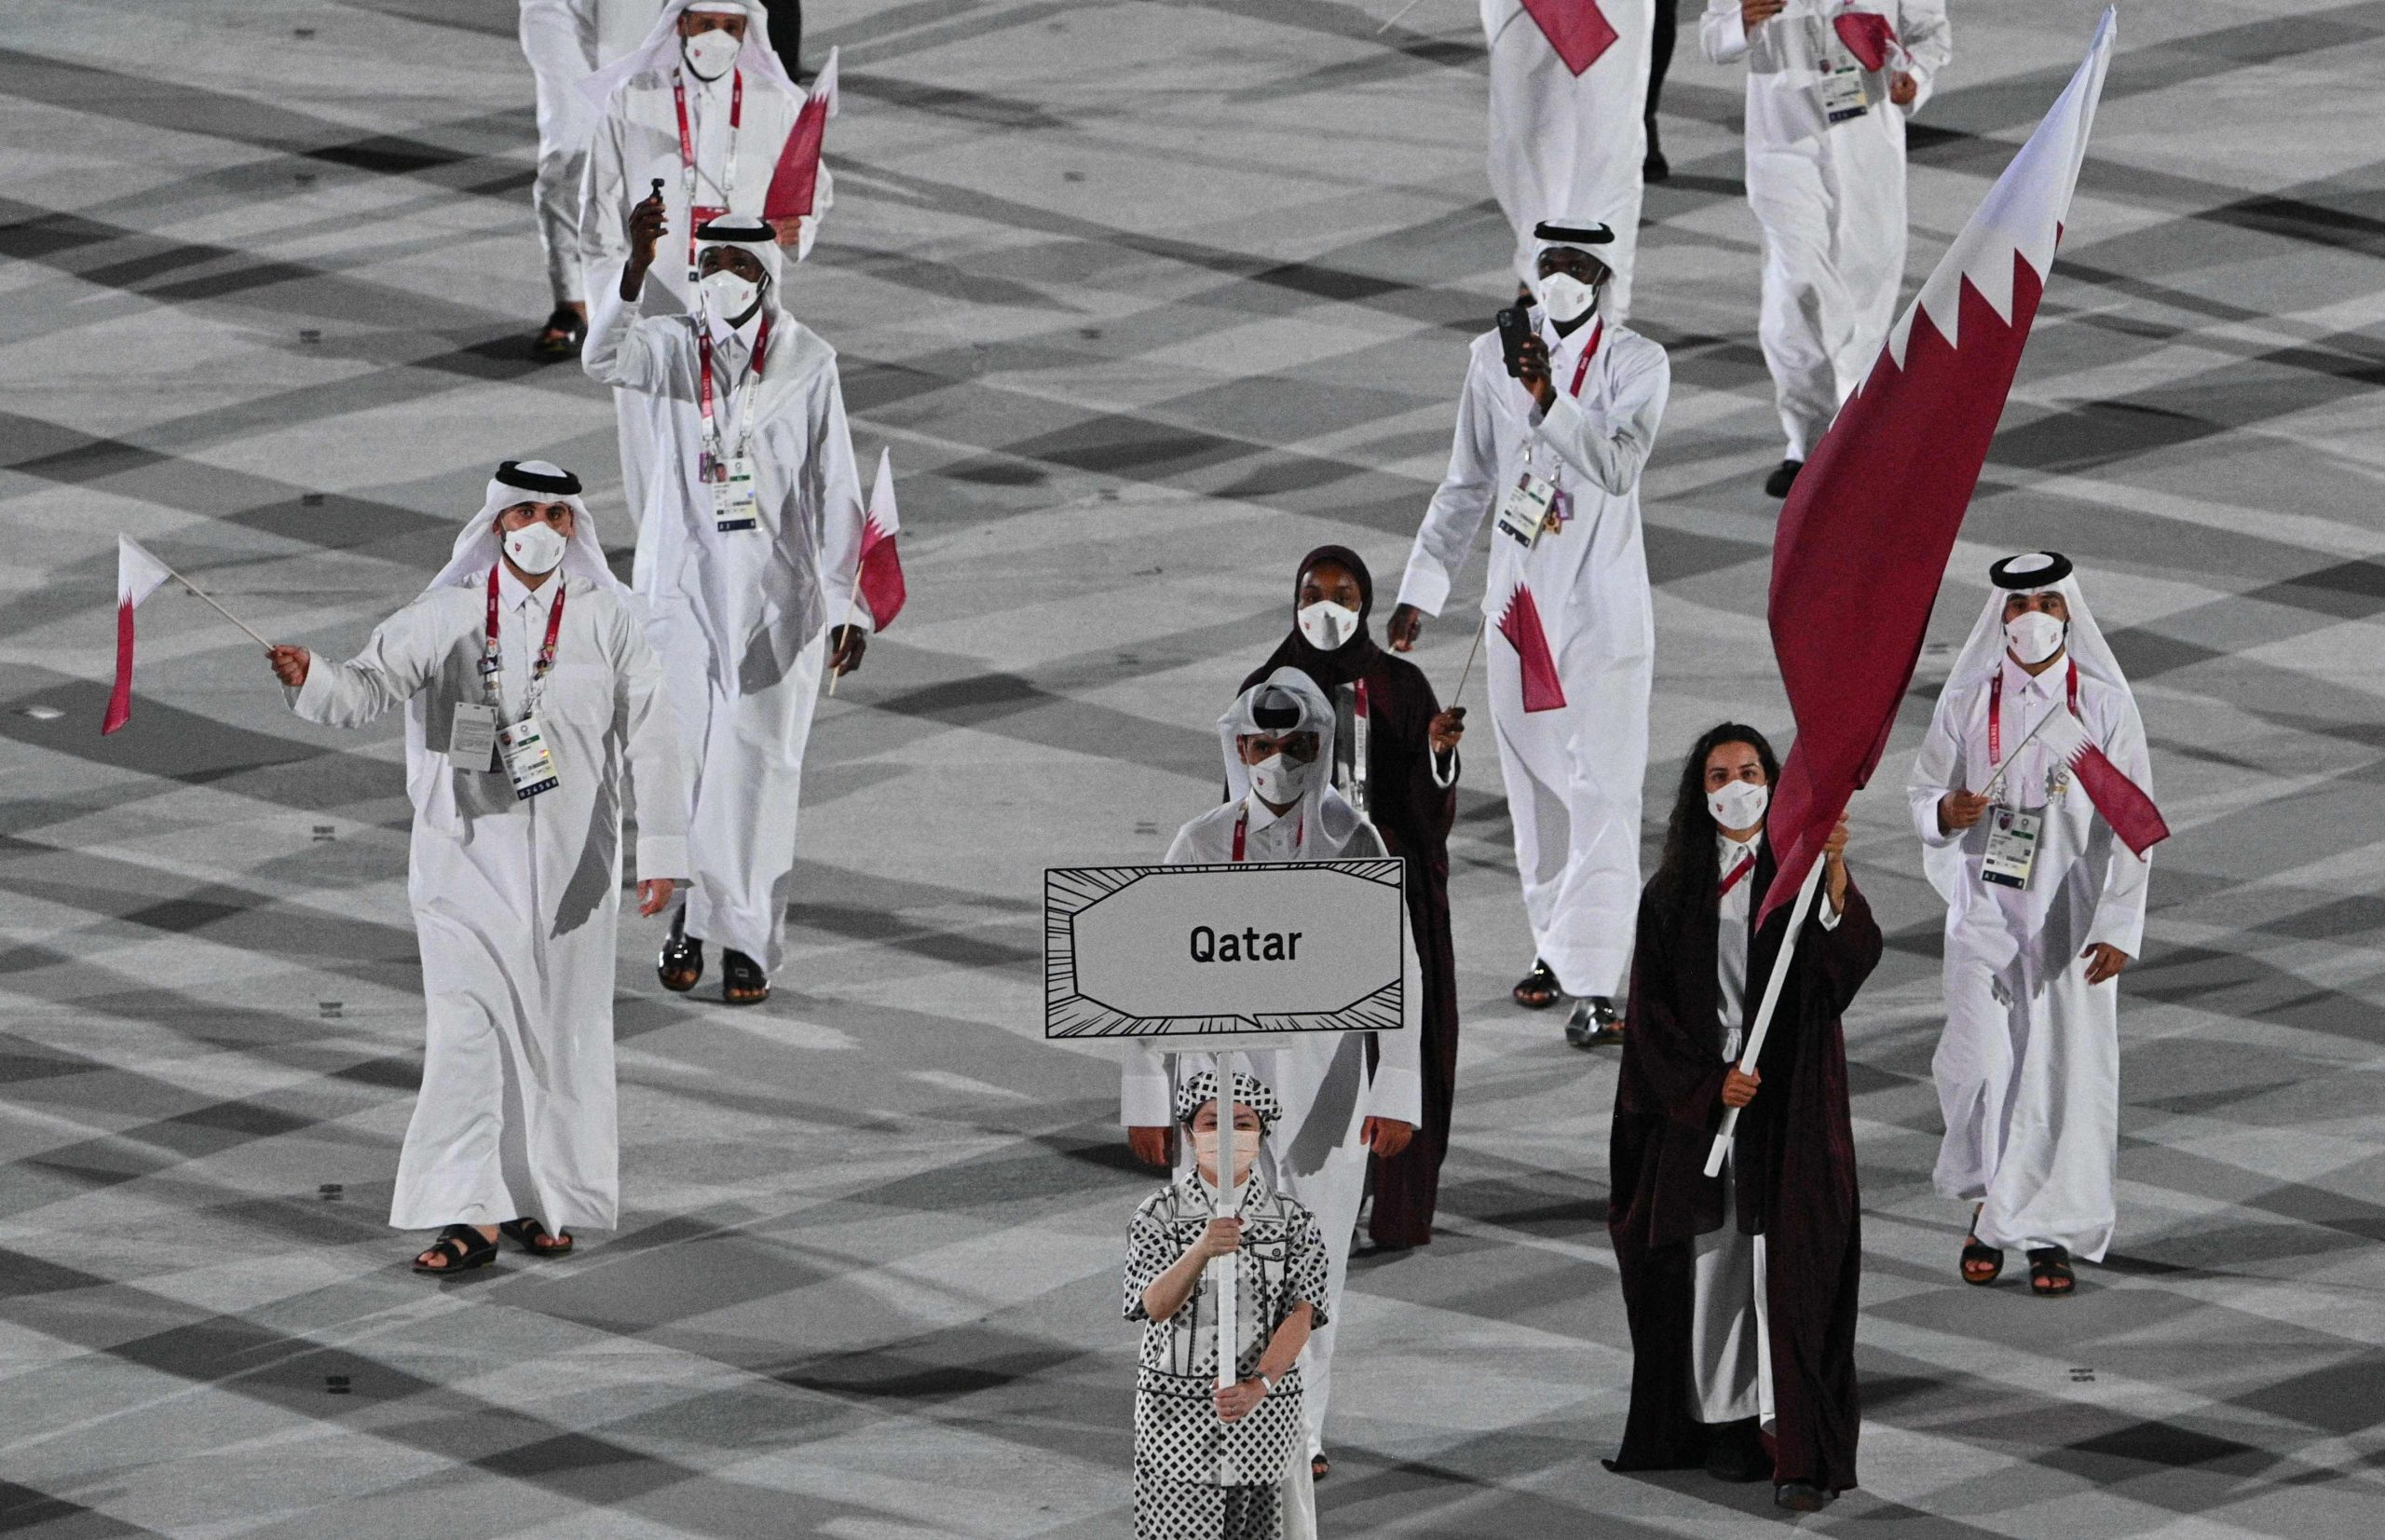 Tokyo 2020: Arabs Accomplish Highest Number of Medals in History... Qatar Tops Ranking